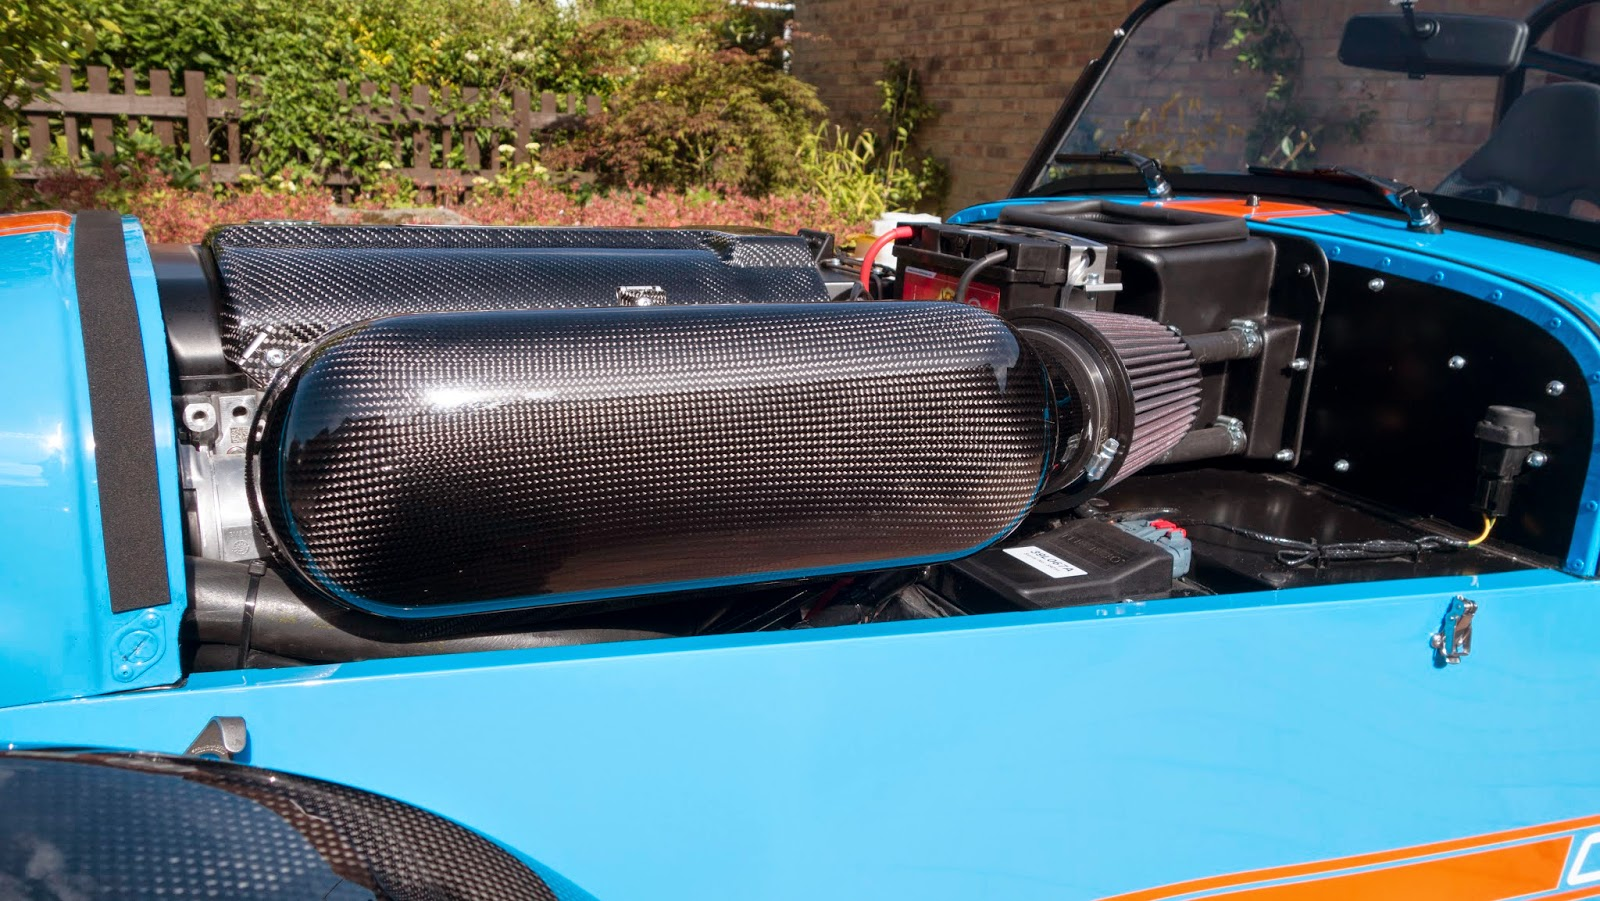 R500 carbon fibre track day air box with k&n air filter.